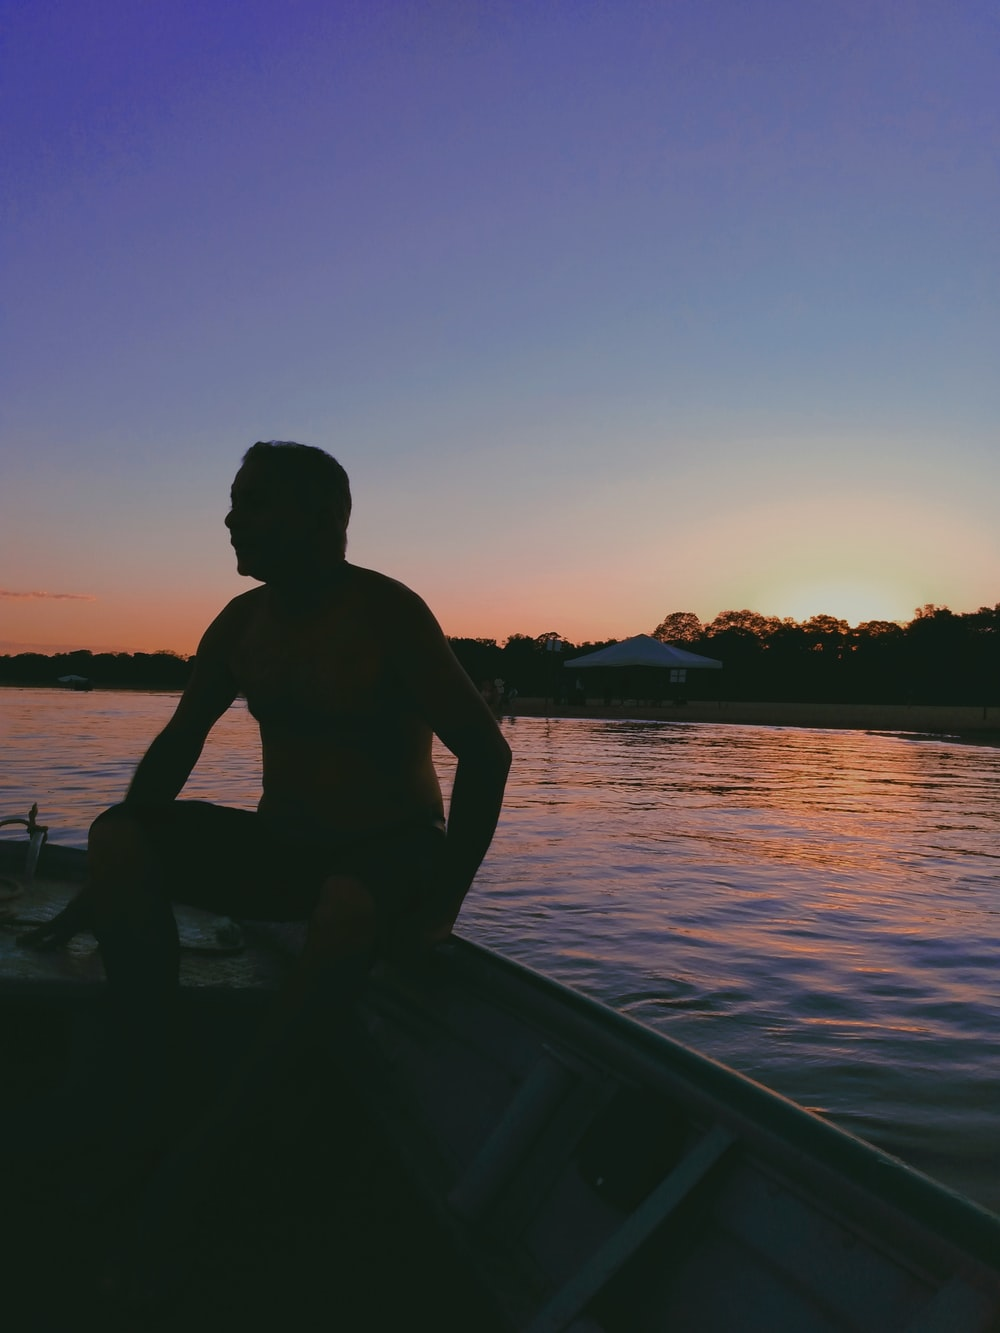 silhouette of man sitting on boat during sunset